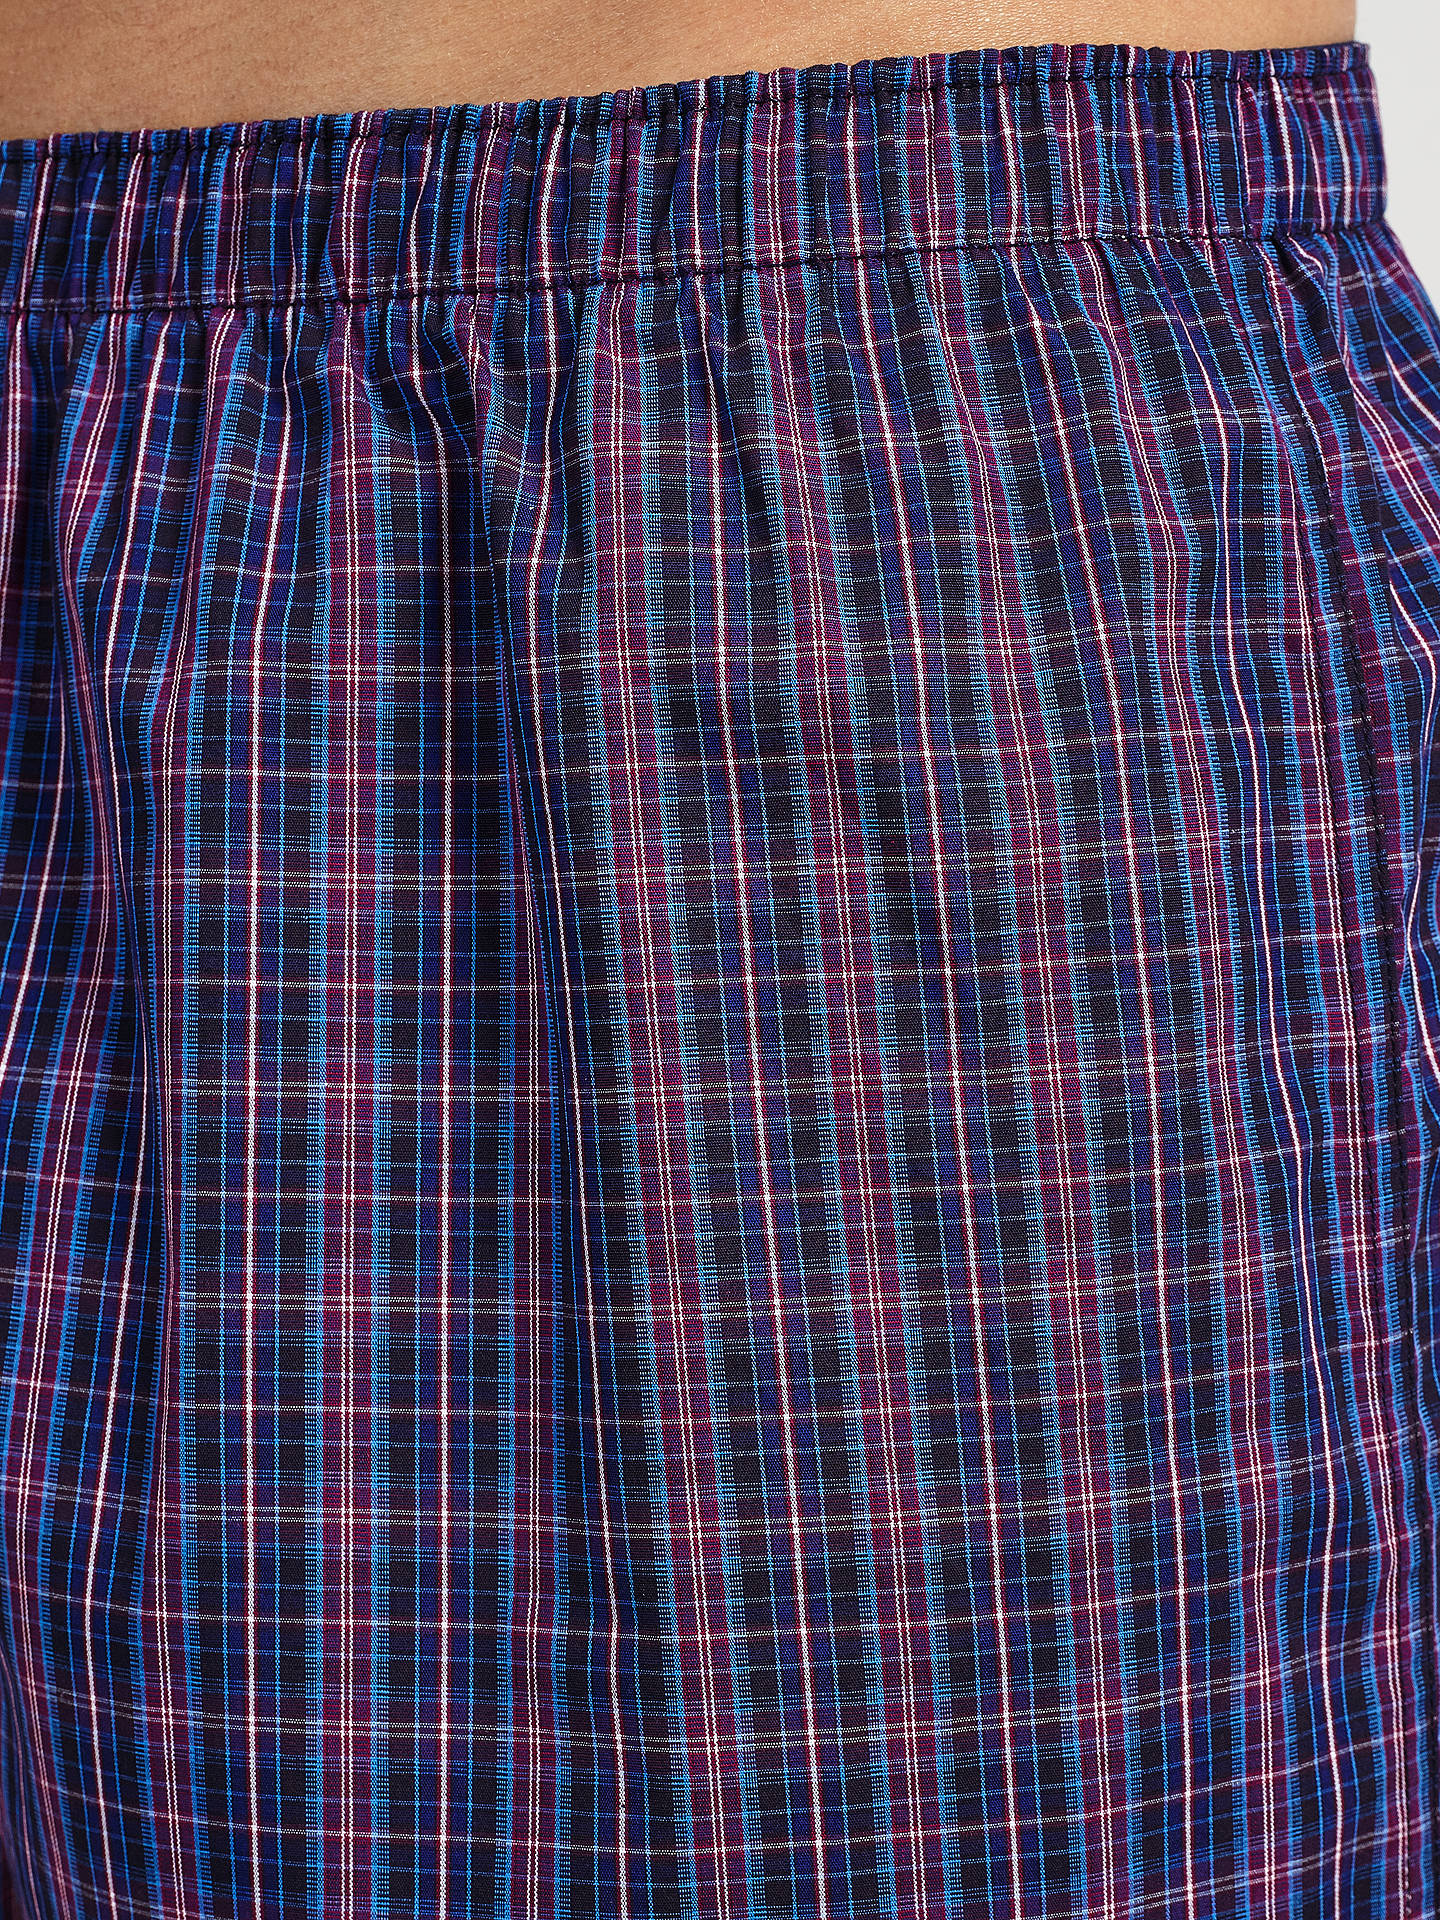 John Lewis Abbots Check Woven Cotton Boxers Pack Of 3 Navy At